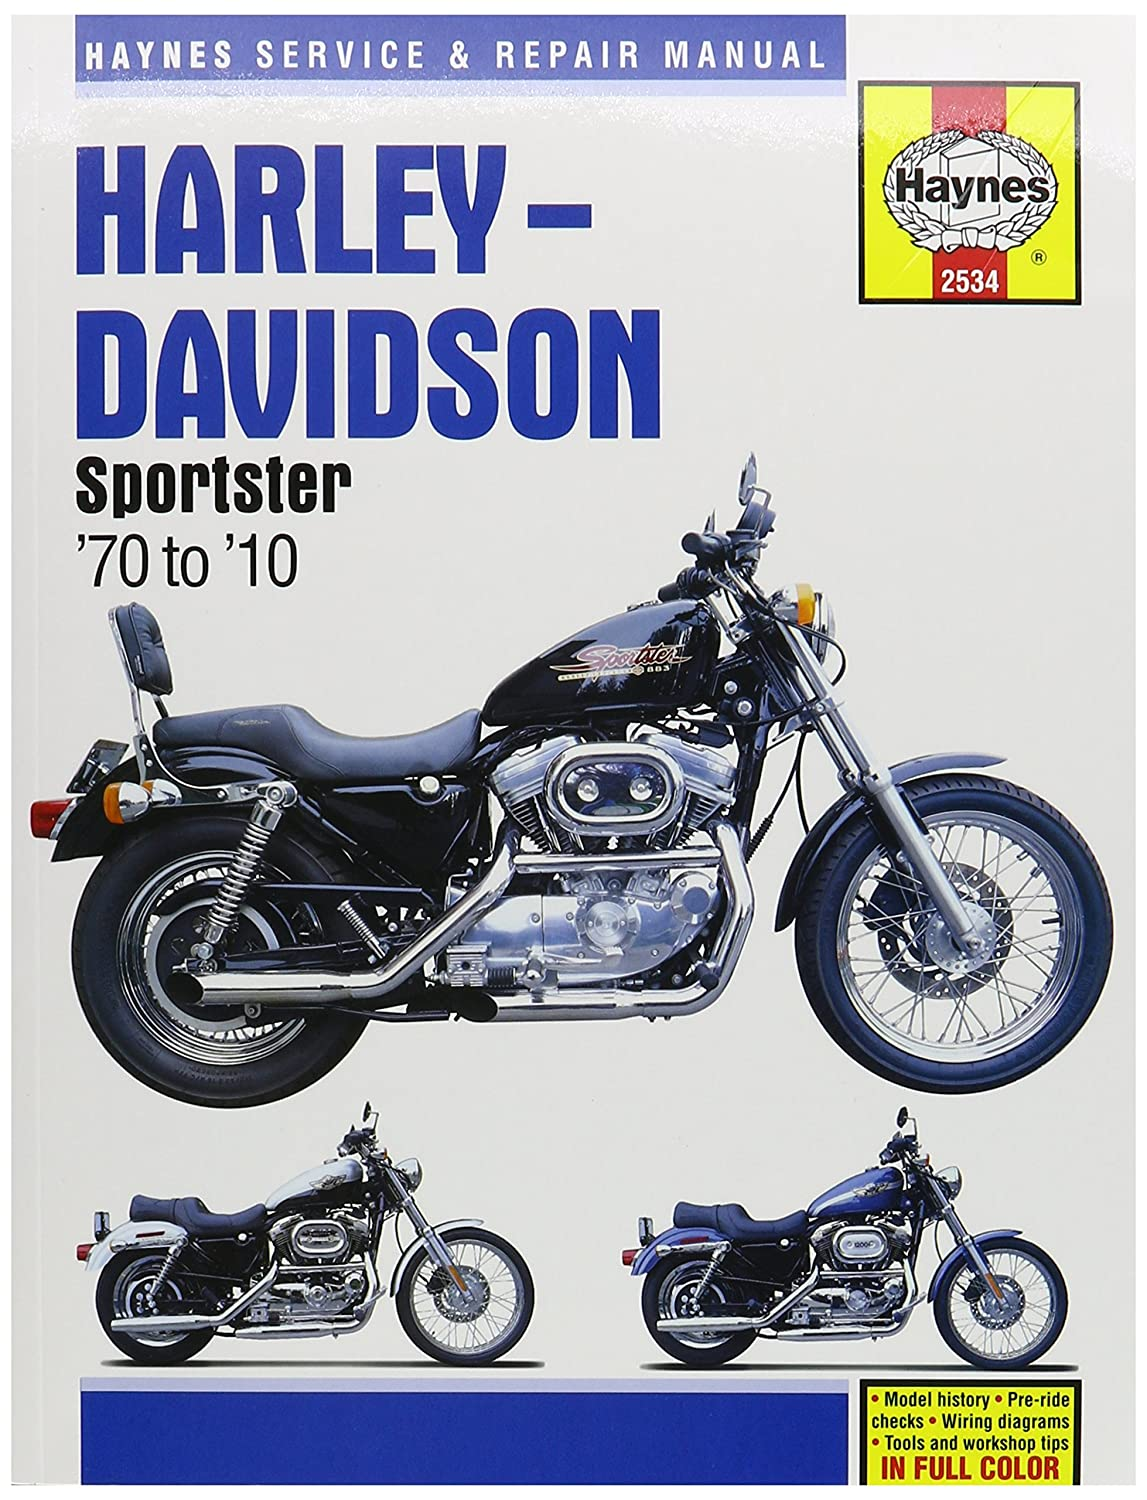 Amazon.com: 1970-2013 Harley Davidson Sportster XL 883 1200 HAYNES on harley dyna frame diagram, harley ignition wiring, harley starter wiring diagram, harley sportster wiring diagram, harley electrical system, harley ignition switch replacement, harley tbw wiring diagram, harley wiring harness diagram, harley heated grips wiring diagram, harley turn signal wiring diagram, harley wiring schematics, harley wiring diagram simplified, harley wiring diagram wires, harley handlebar wiring diagram, harley speedometer wiring diagram, harley coil wiring, harley softail wiring diagram, harley wiring diagrams pdf, harley chopper wiring diagram, harley wiring diagrams online,